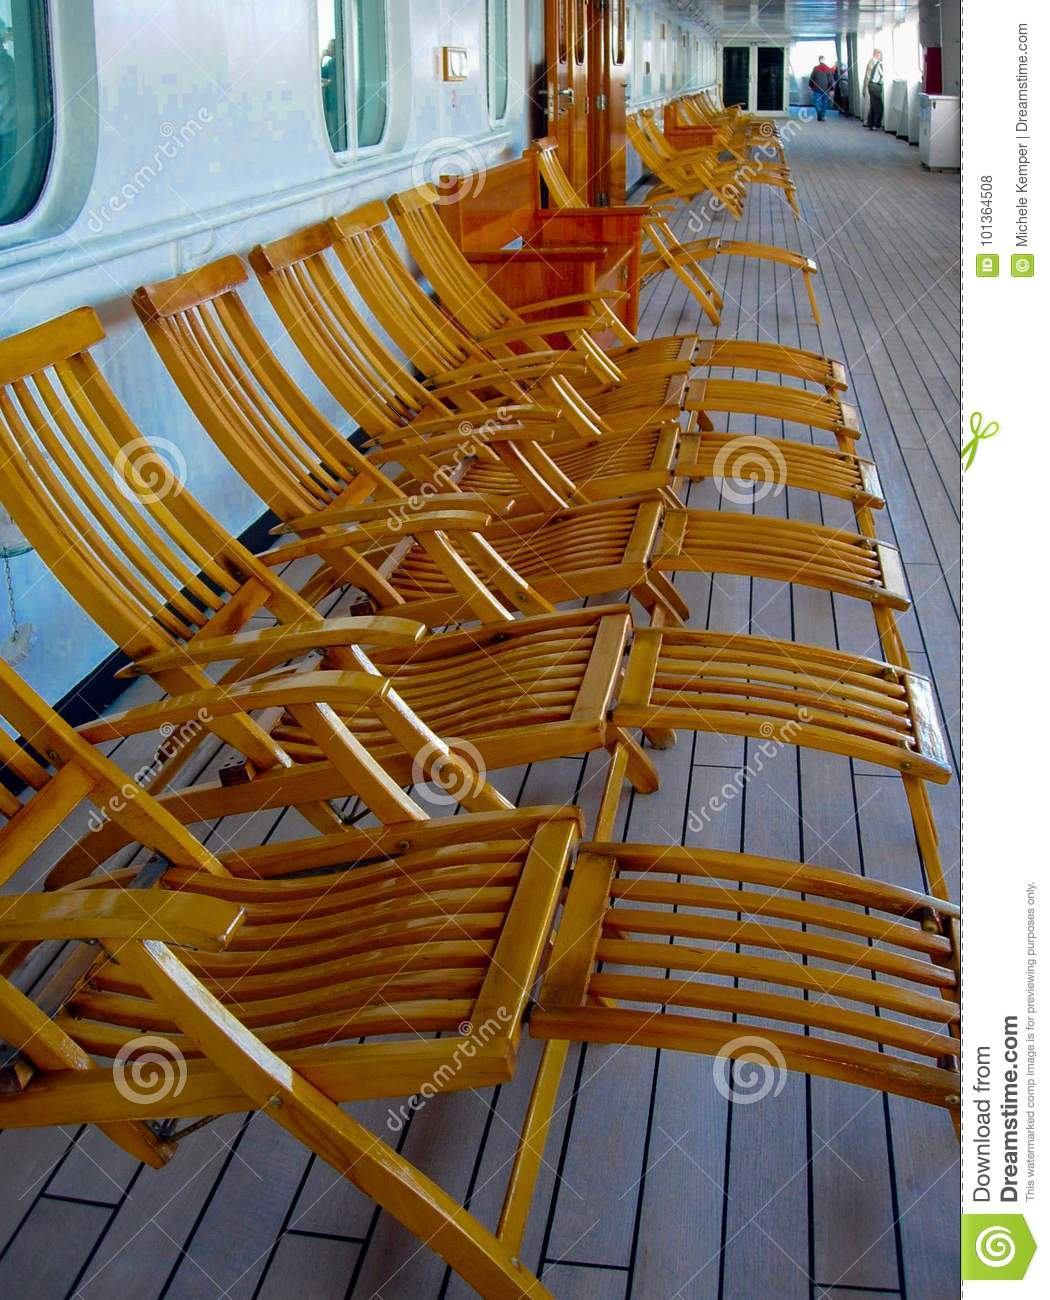 Empty Deck Chairs On Cruise Ship Stock Photo - Image of ...